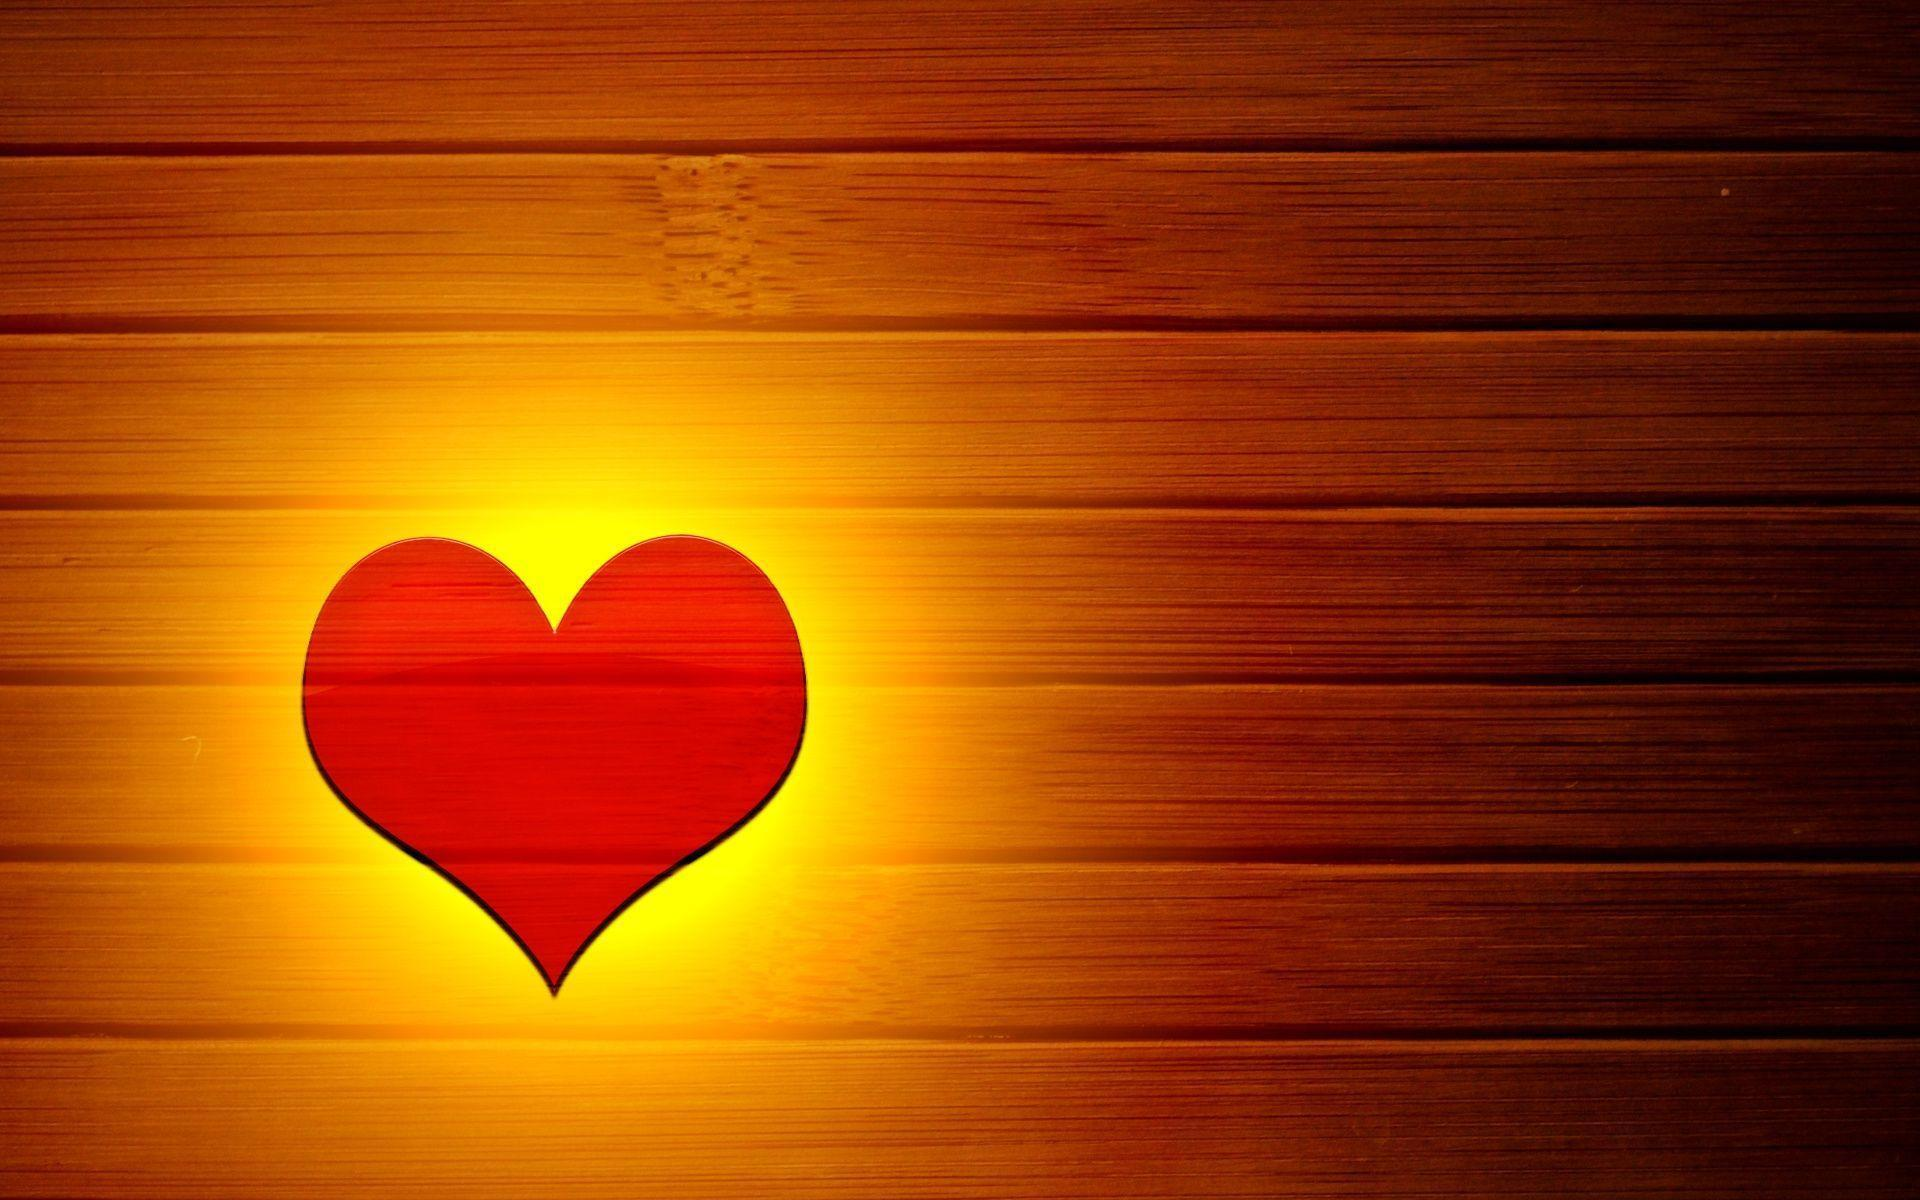 Love Wallpaper Black Background : Love Backgrounds Wallpapers - Wallpaper cave